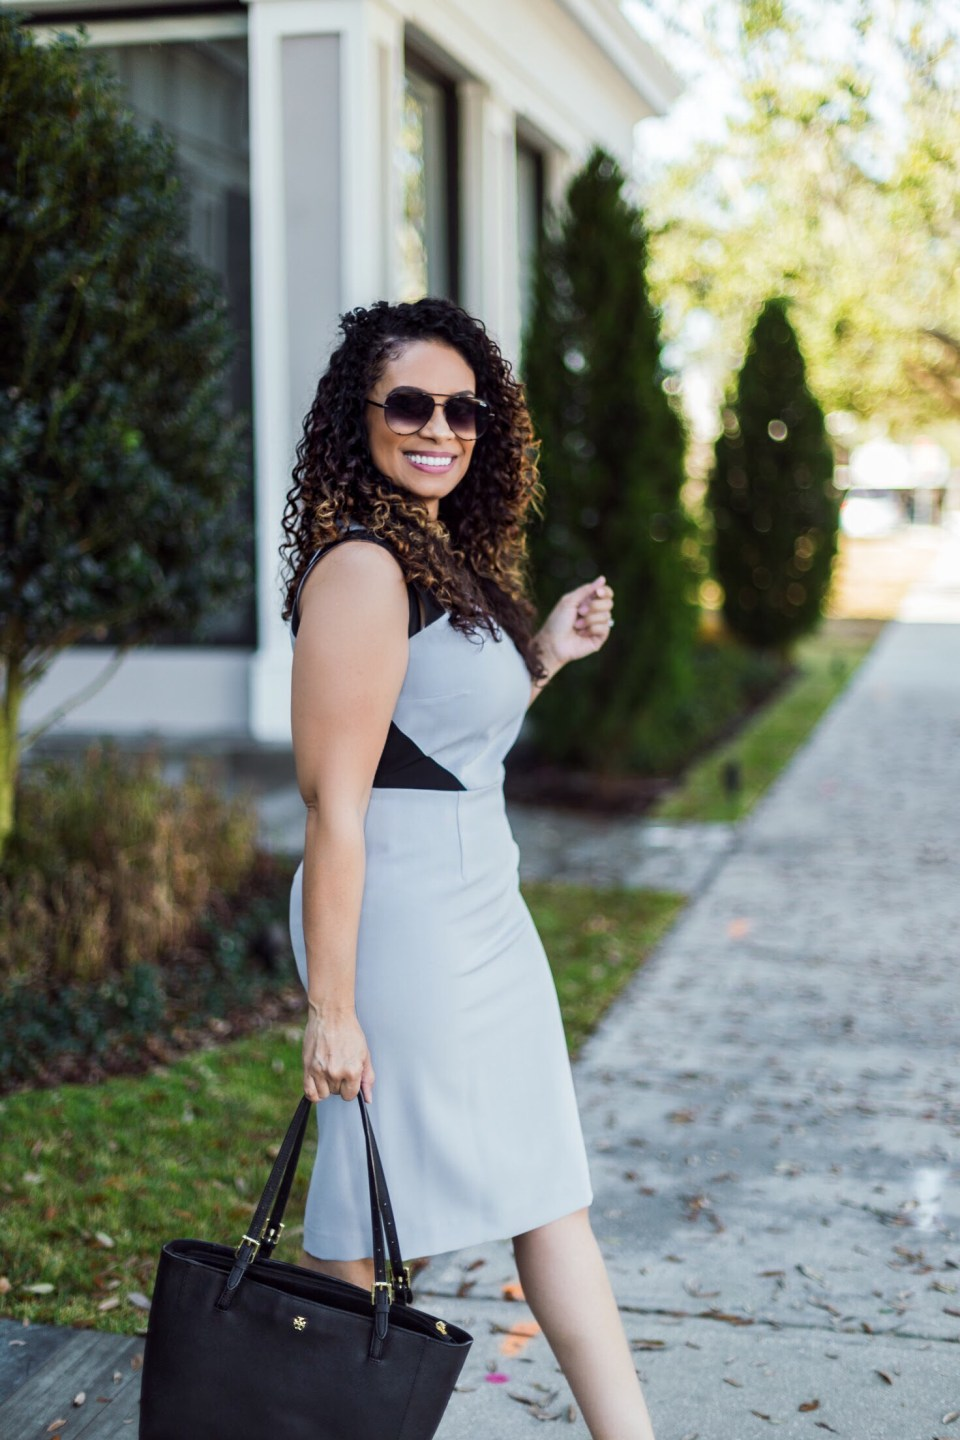 3 Best Places To Shop For A Affordable Professional Wardrobe-Tiffany D. Brown